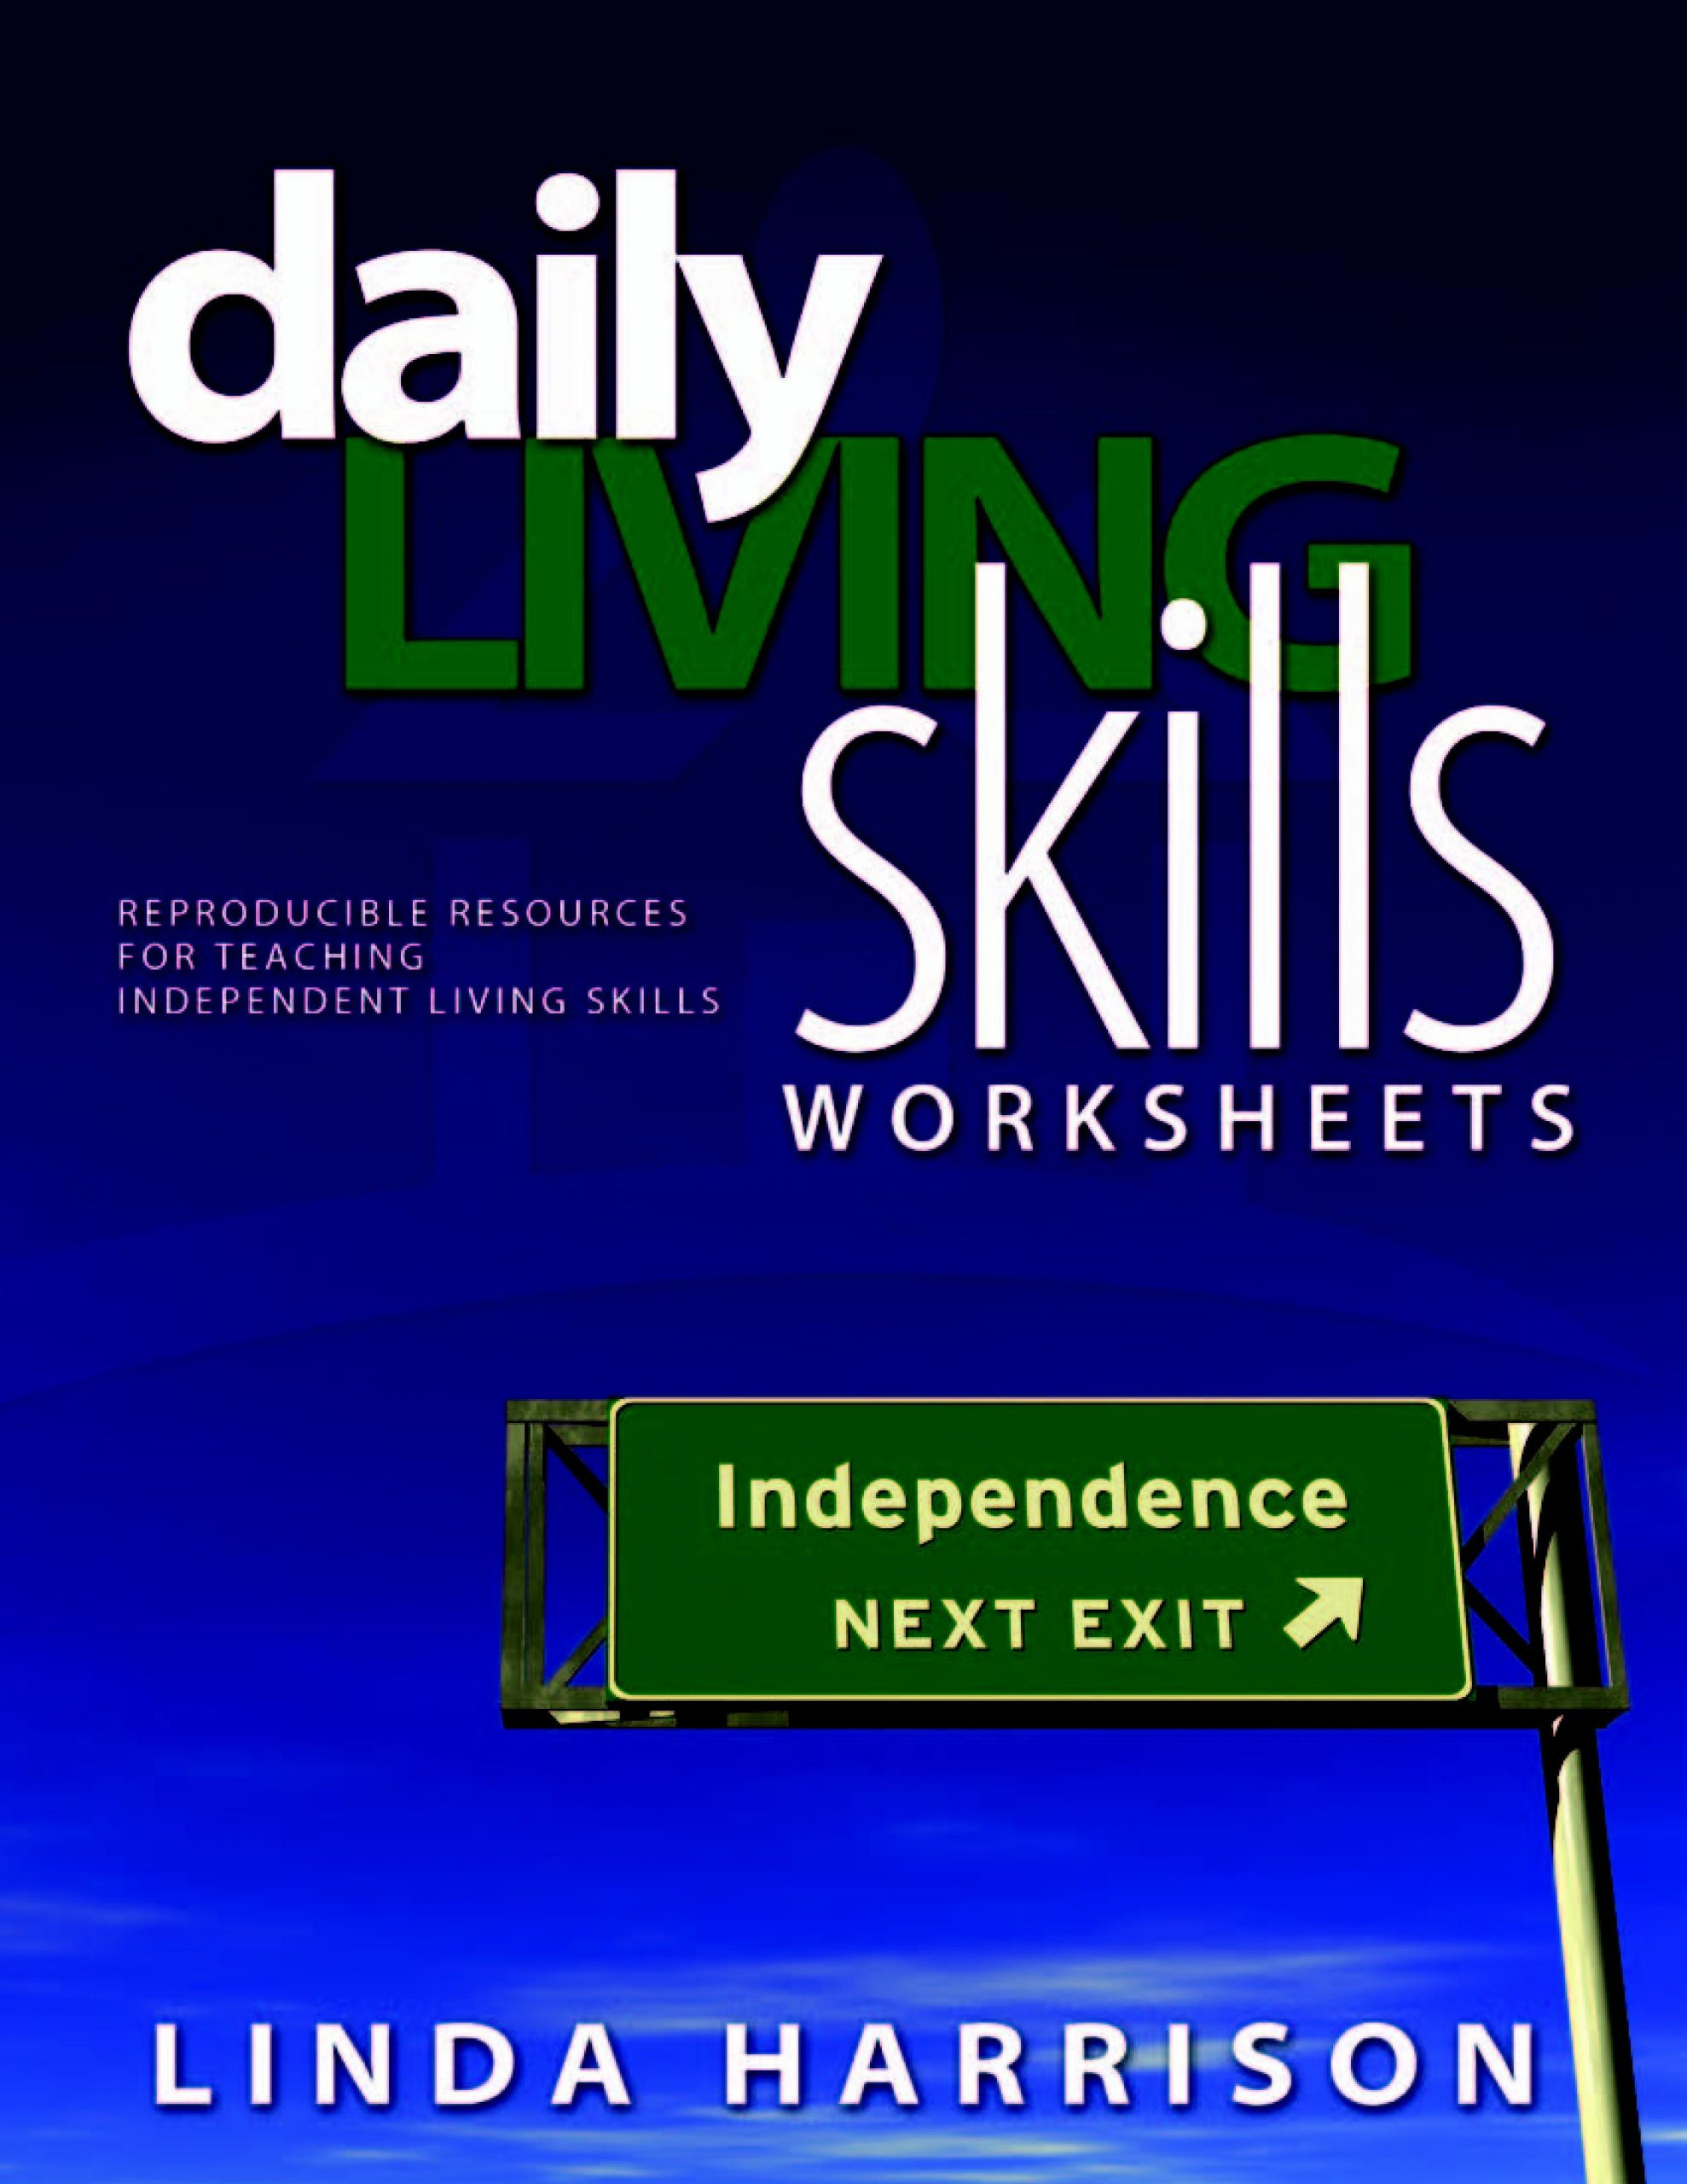 Daily Living Skills Worksheet Daily Living Skills – Resources for Teaching Daily Living Skills